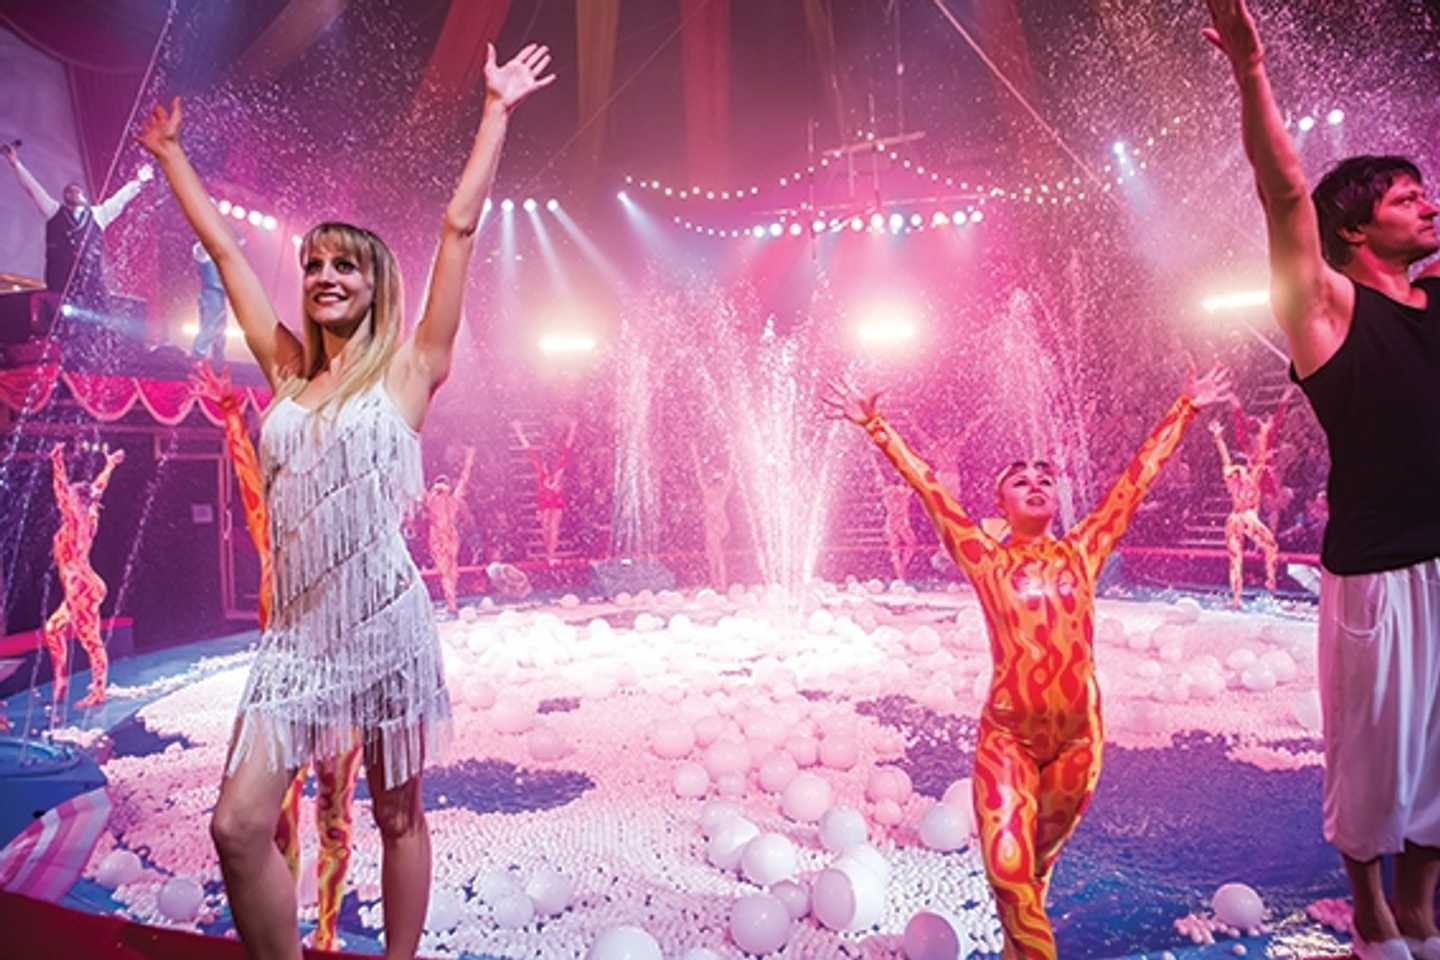 A show in the Hippodrome Circus